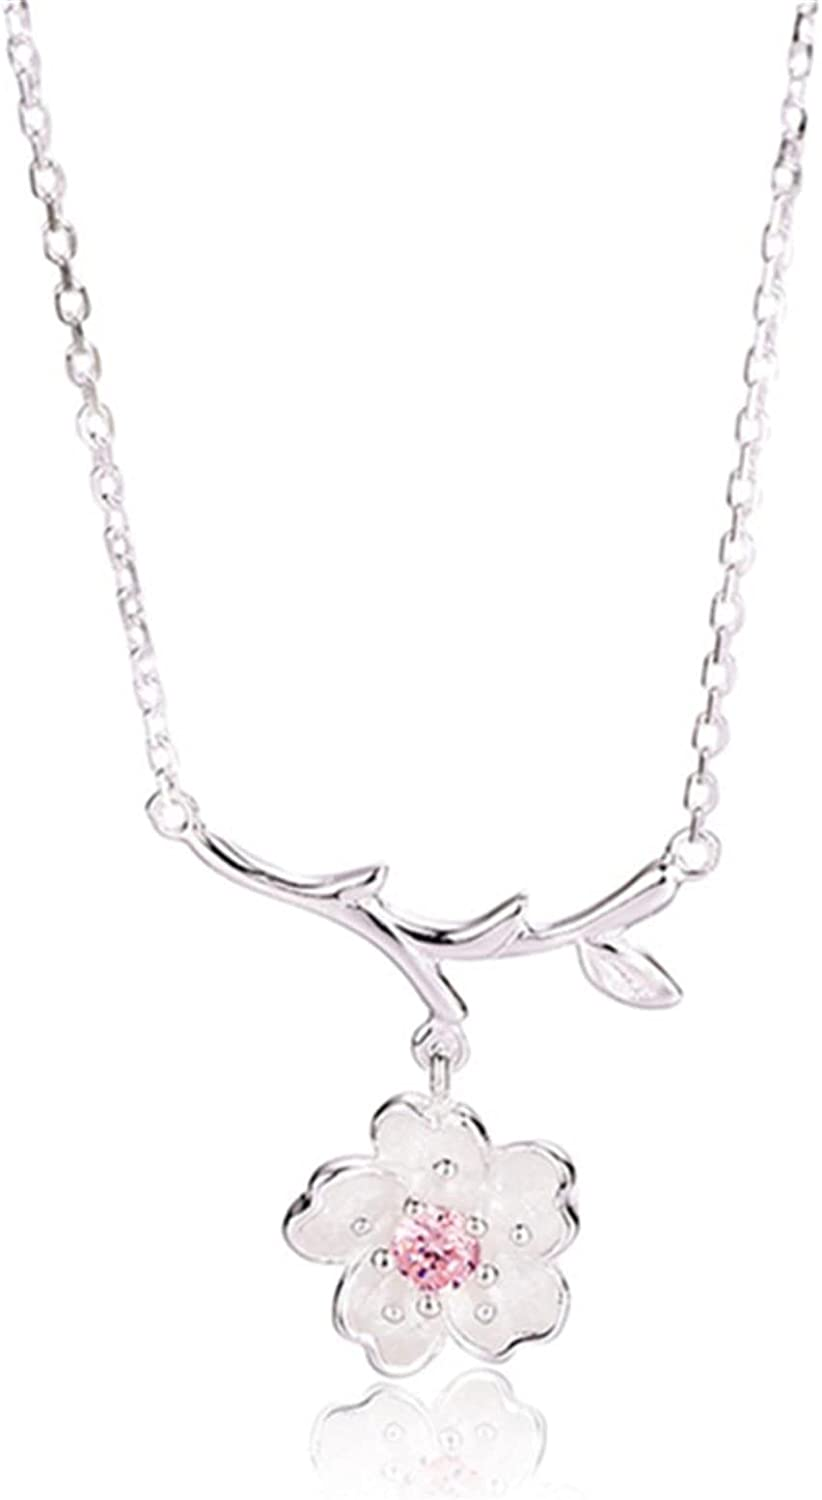 ZHUIGUANG Cherry Blossom Shaped Necklace Flowers Tree Branches Pendant with Rhinestone Choker Chain Necklace Collar Necklace